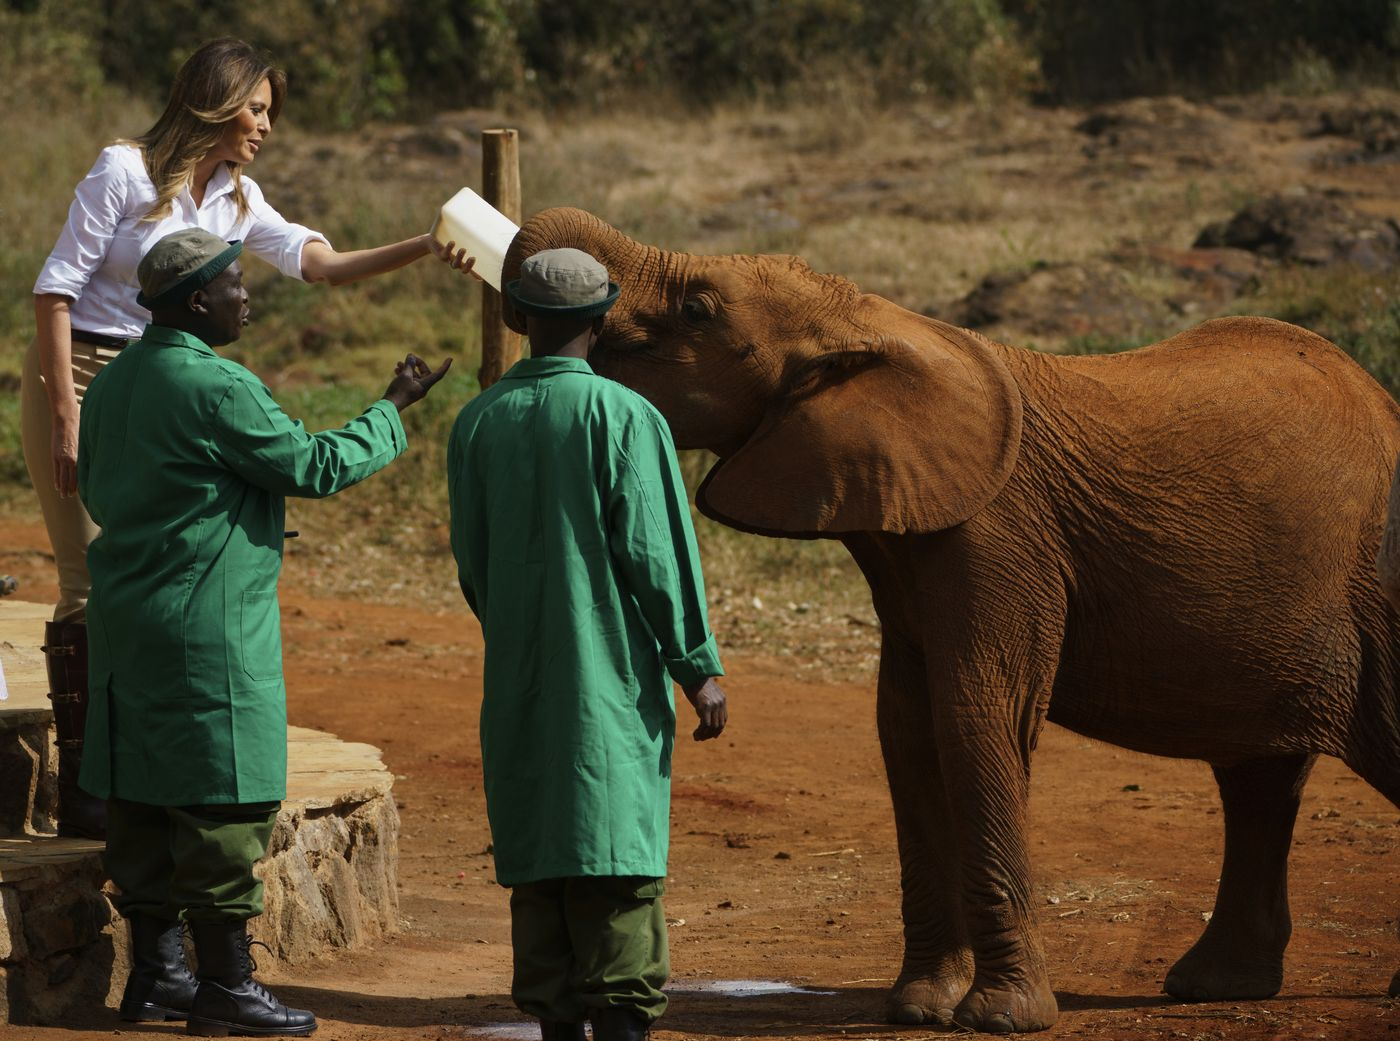 Melania Trump visits children's home, wildlife sanctuary in Nairobi